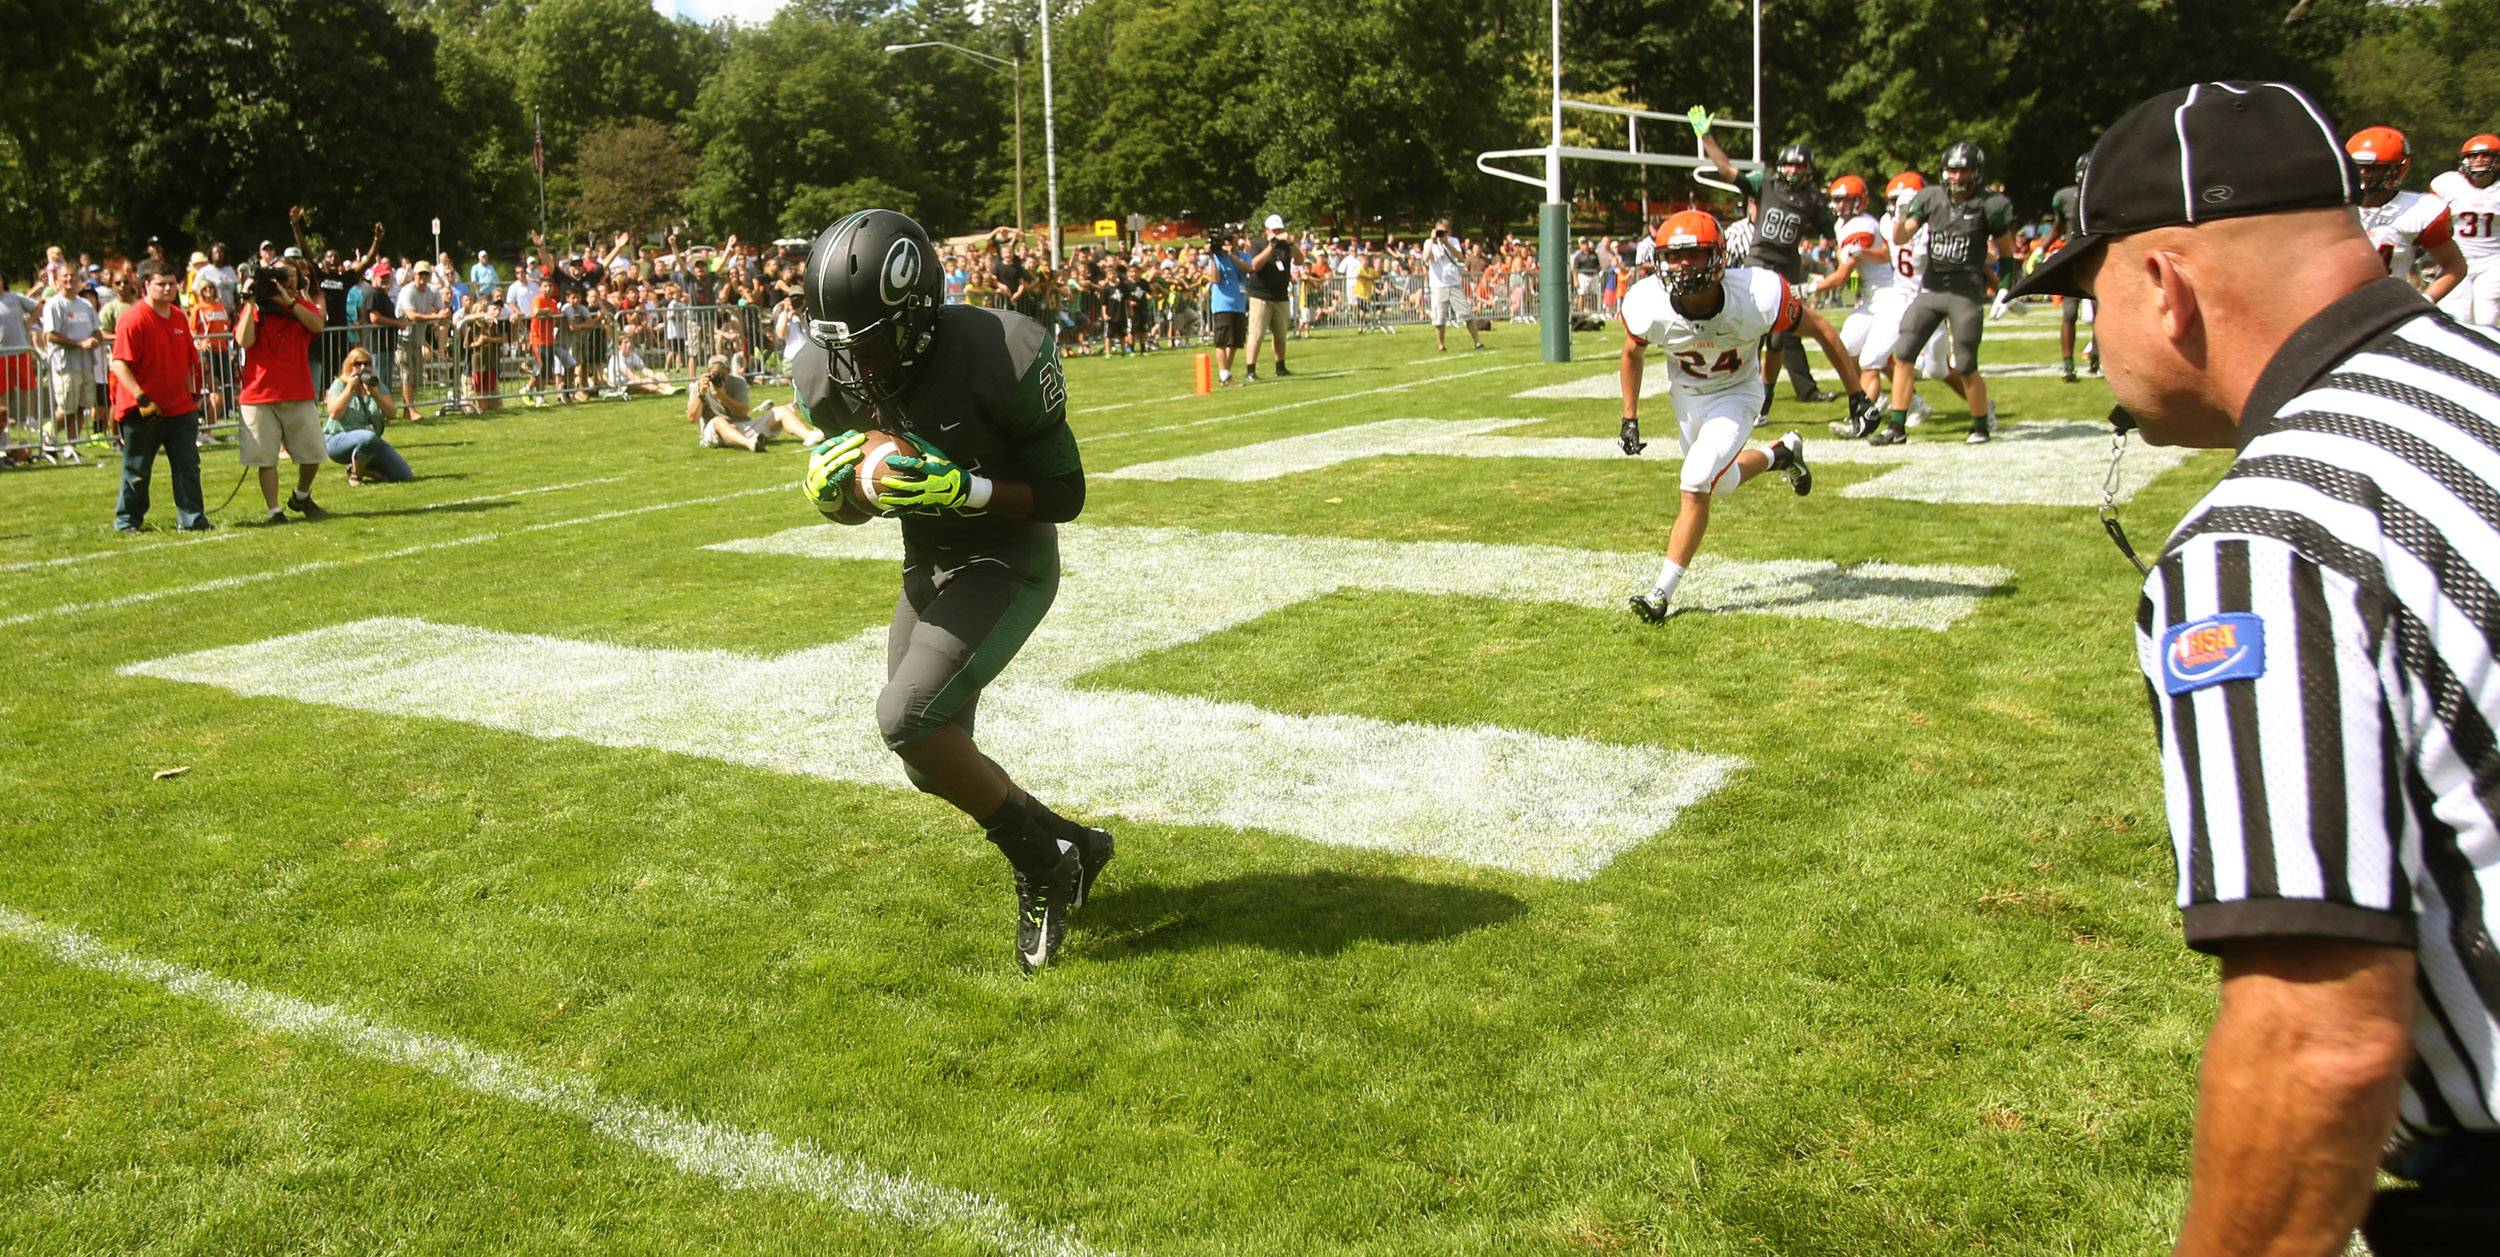 Glenbard West's Donahvon Vaughn scores his second touchdown of the first half against Wheaton Warrenville South, as he catches a 4th down play-action pass.